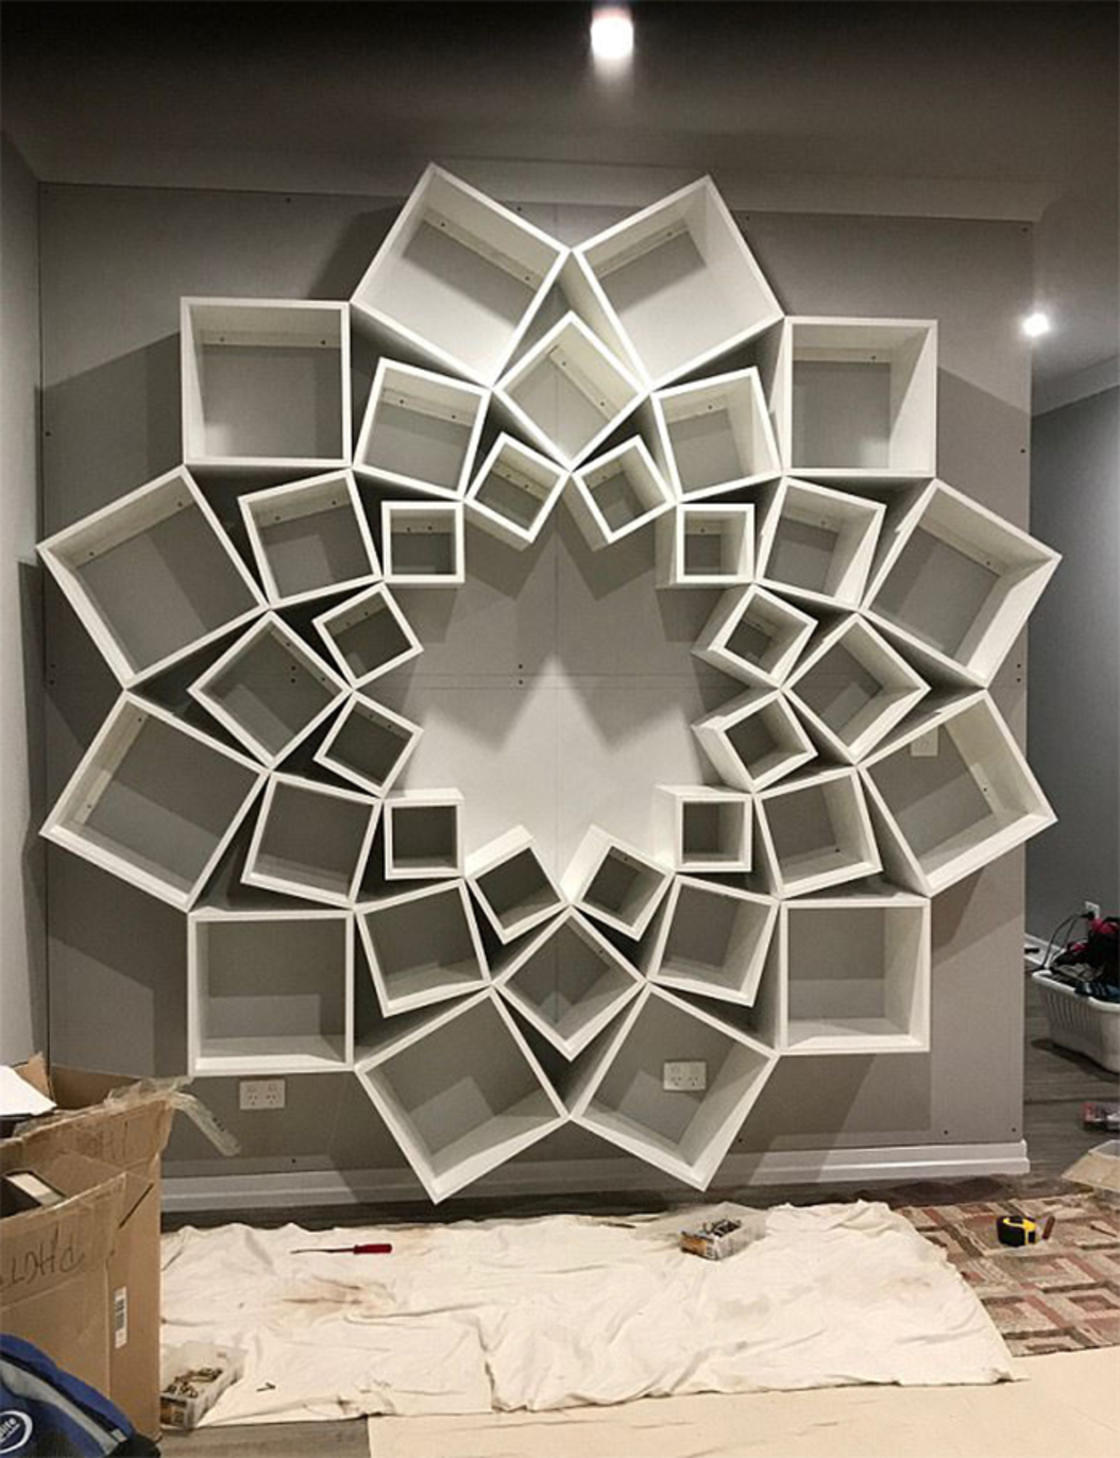 Flower Bookshelf This Couple Designed An Amazing DIY Project